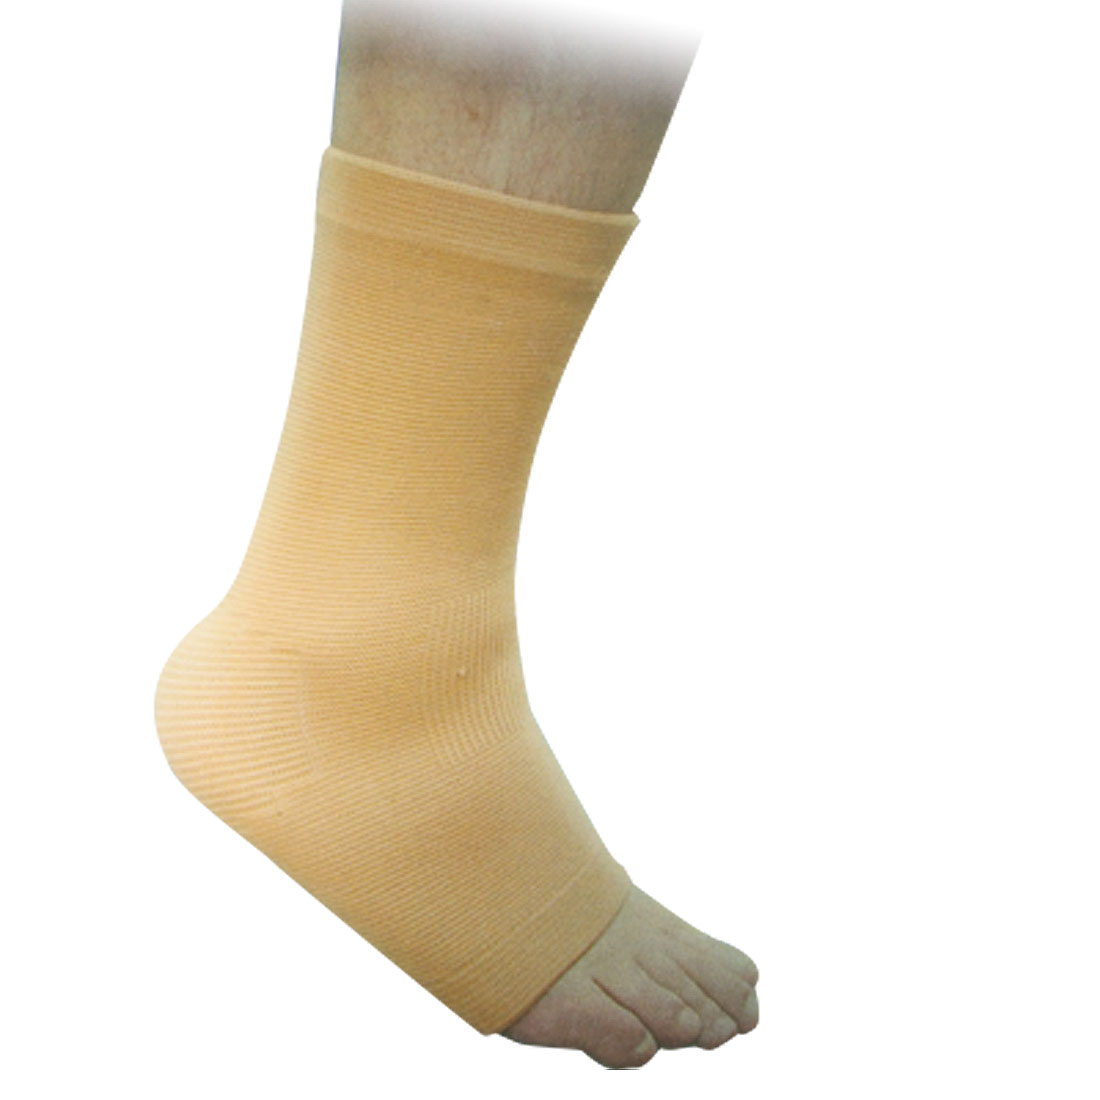 Elastic Ankle Sleeve Support Wrapper Light Brown